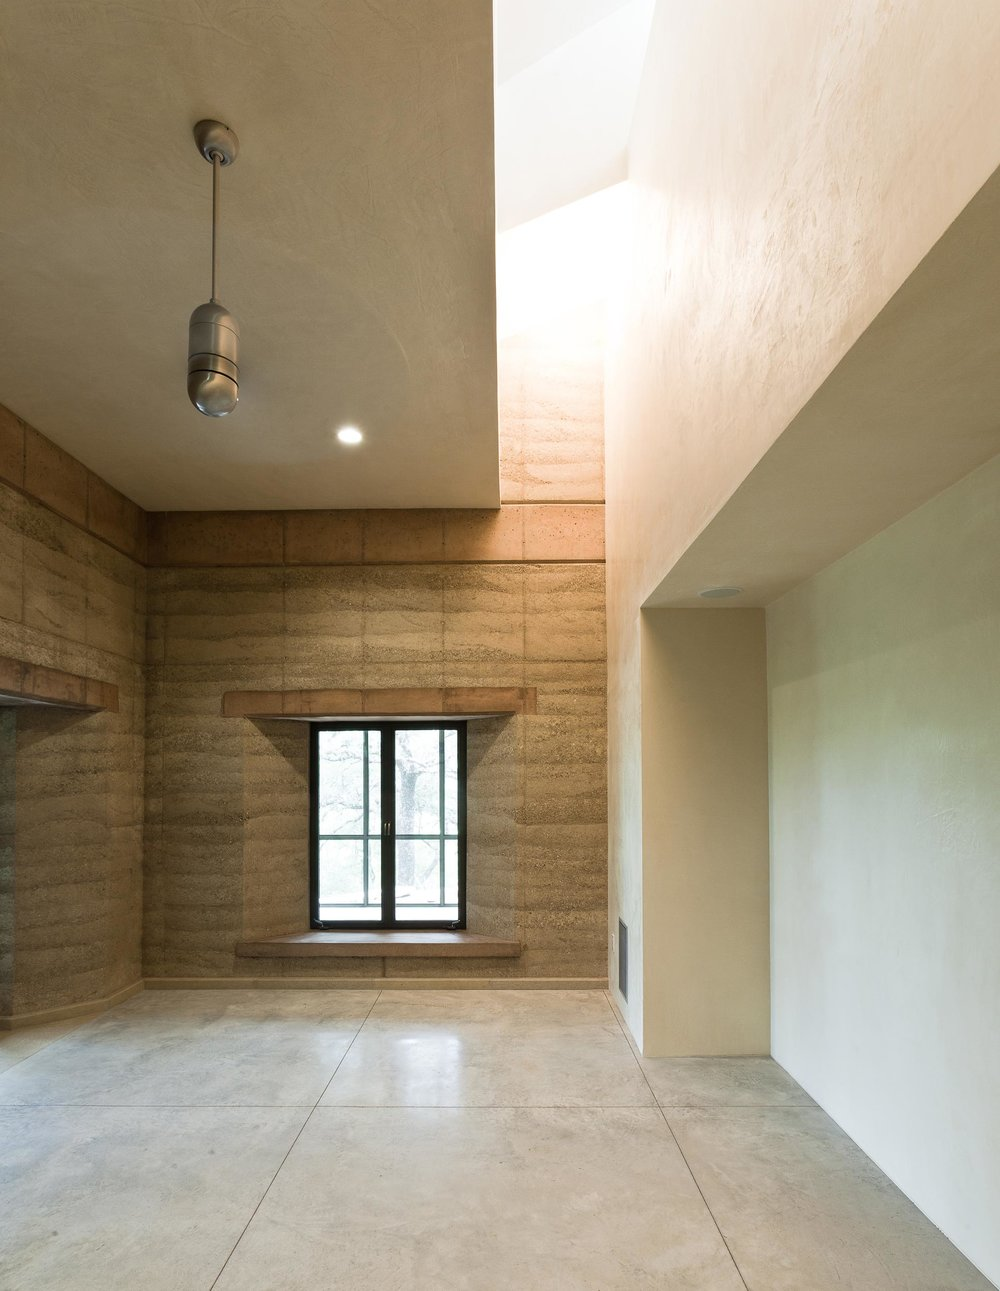 furman_keil_rammed_earth_ranch_7.jpg